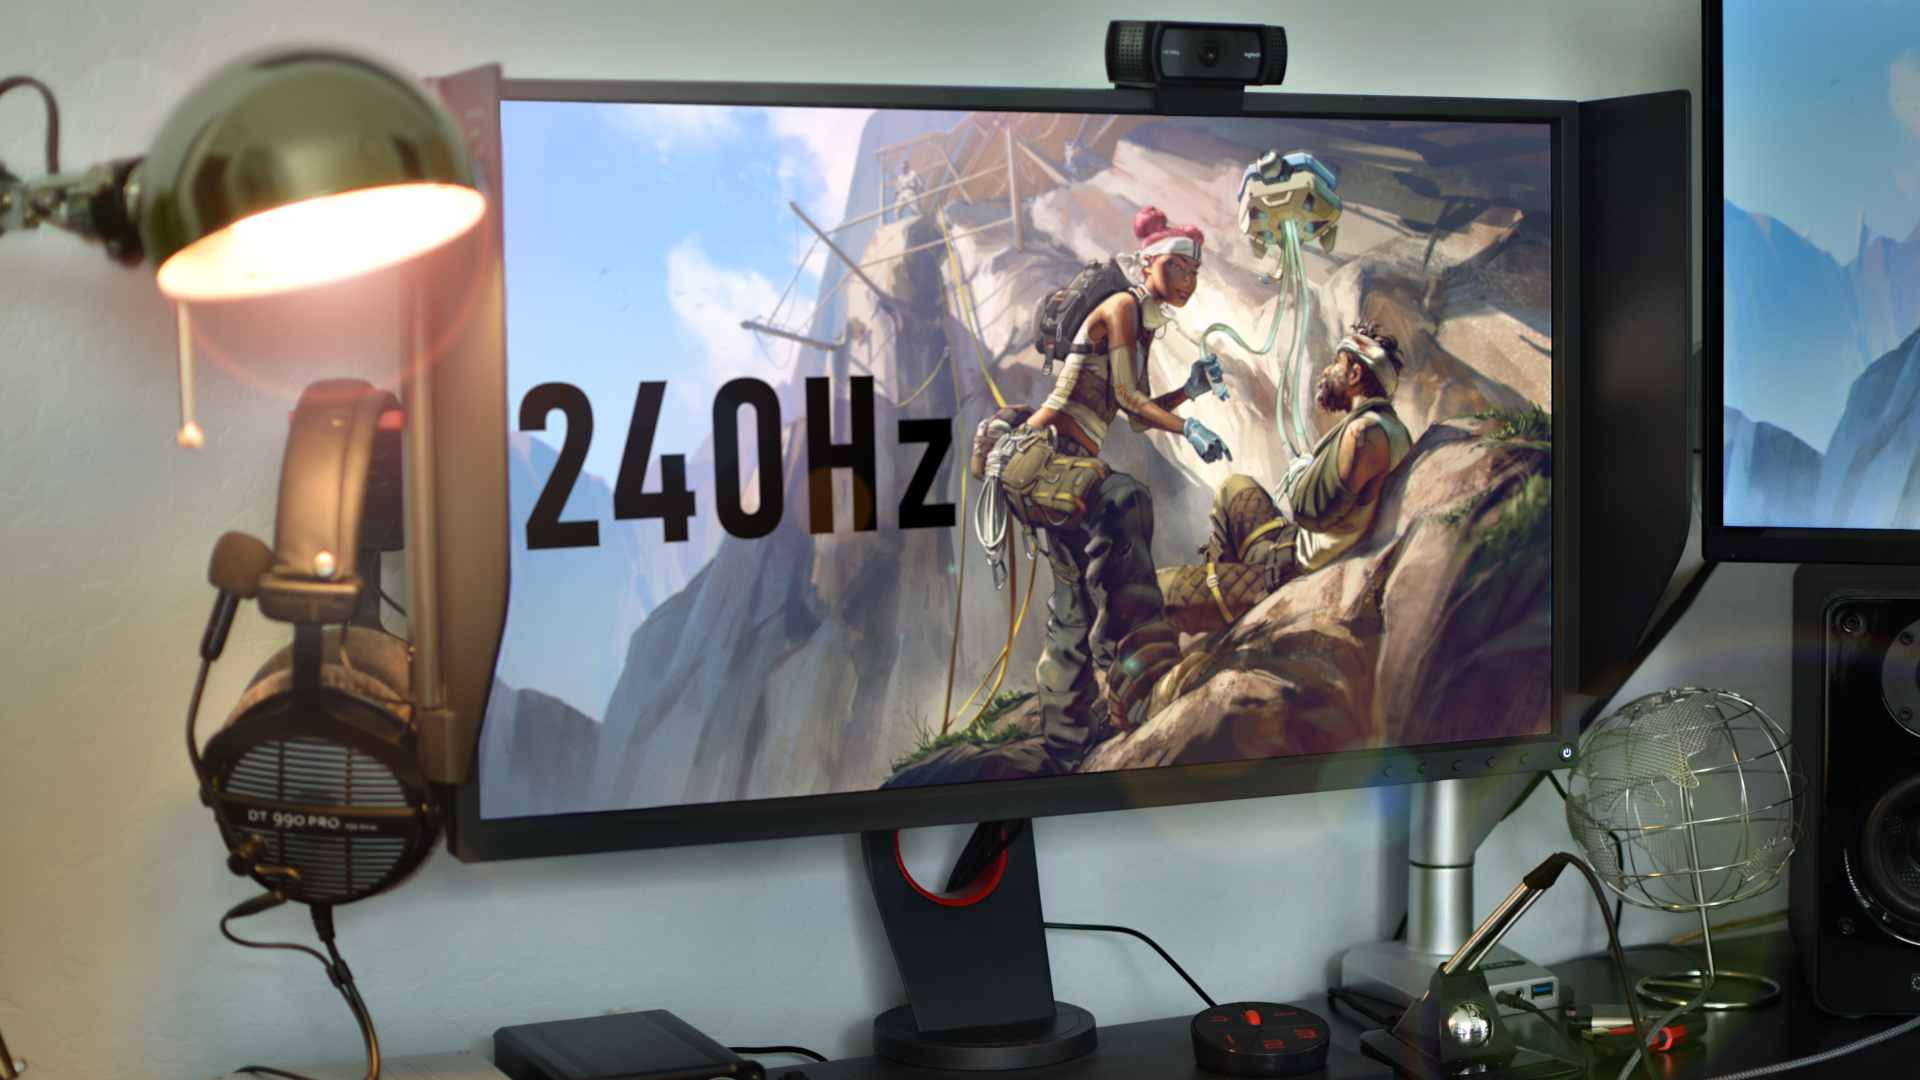 What's it Like to Game on a 240Hz Monitor? - Jerry Neutron